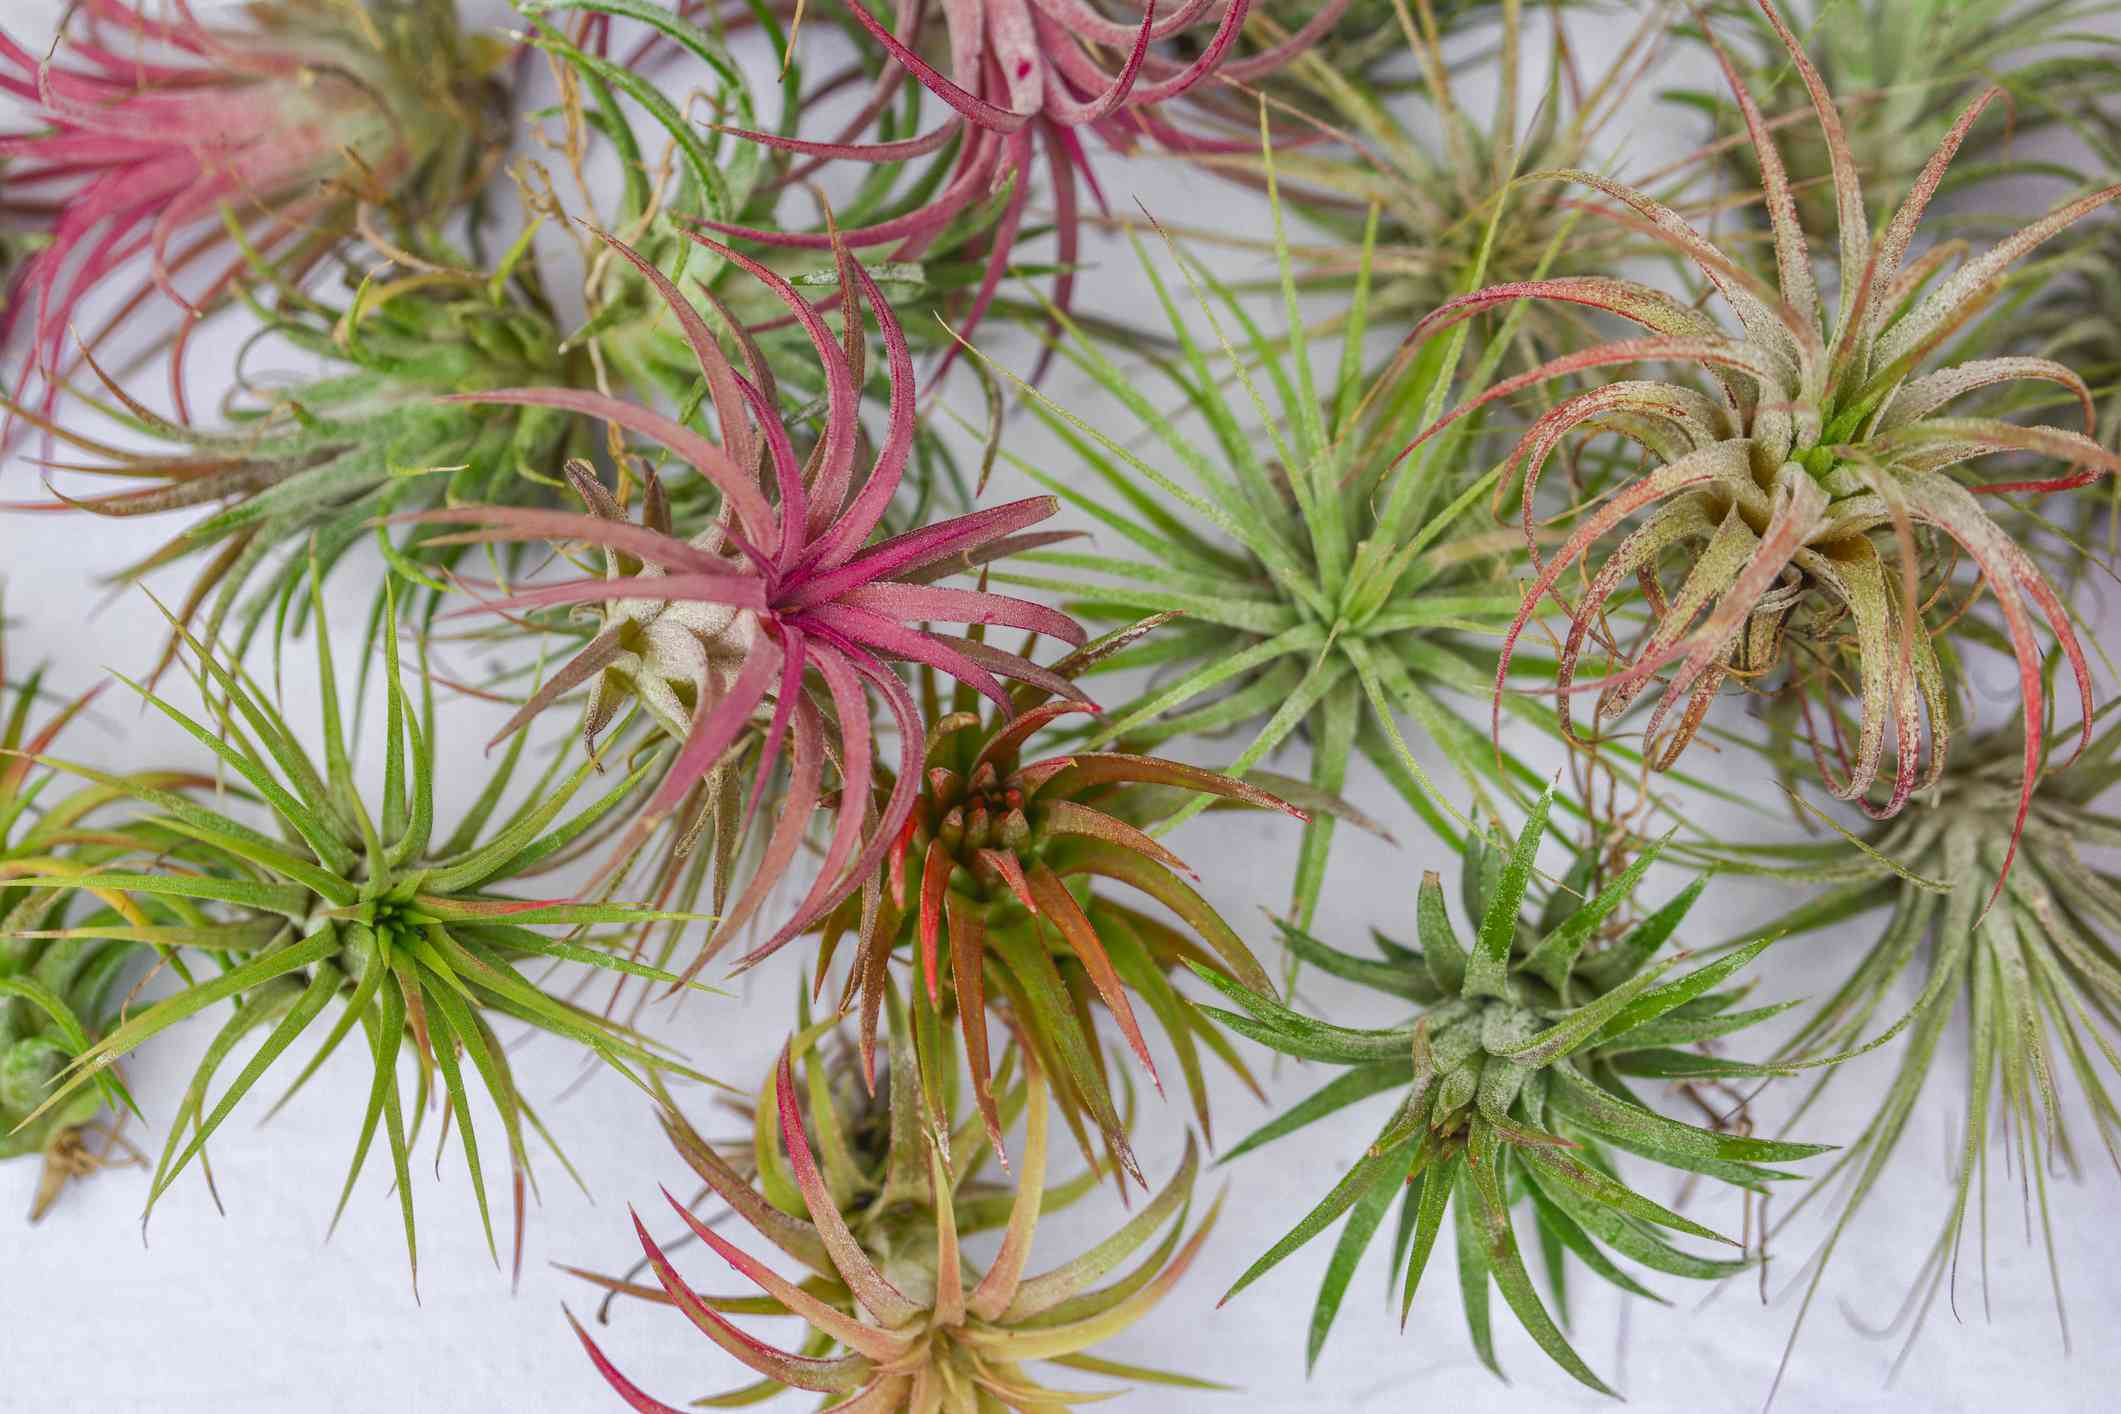 Brachycaulos air plants in shades of green, pink, and orange